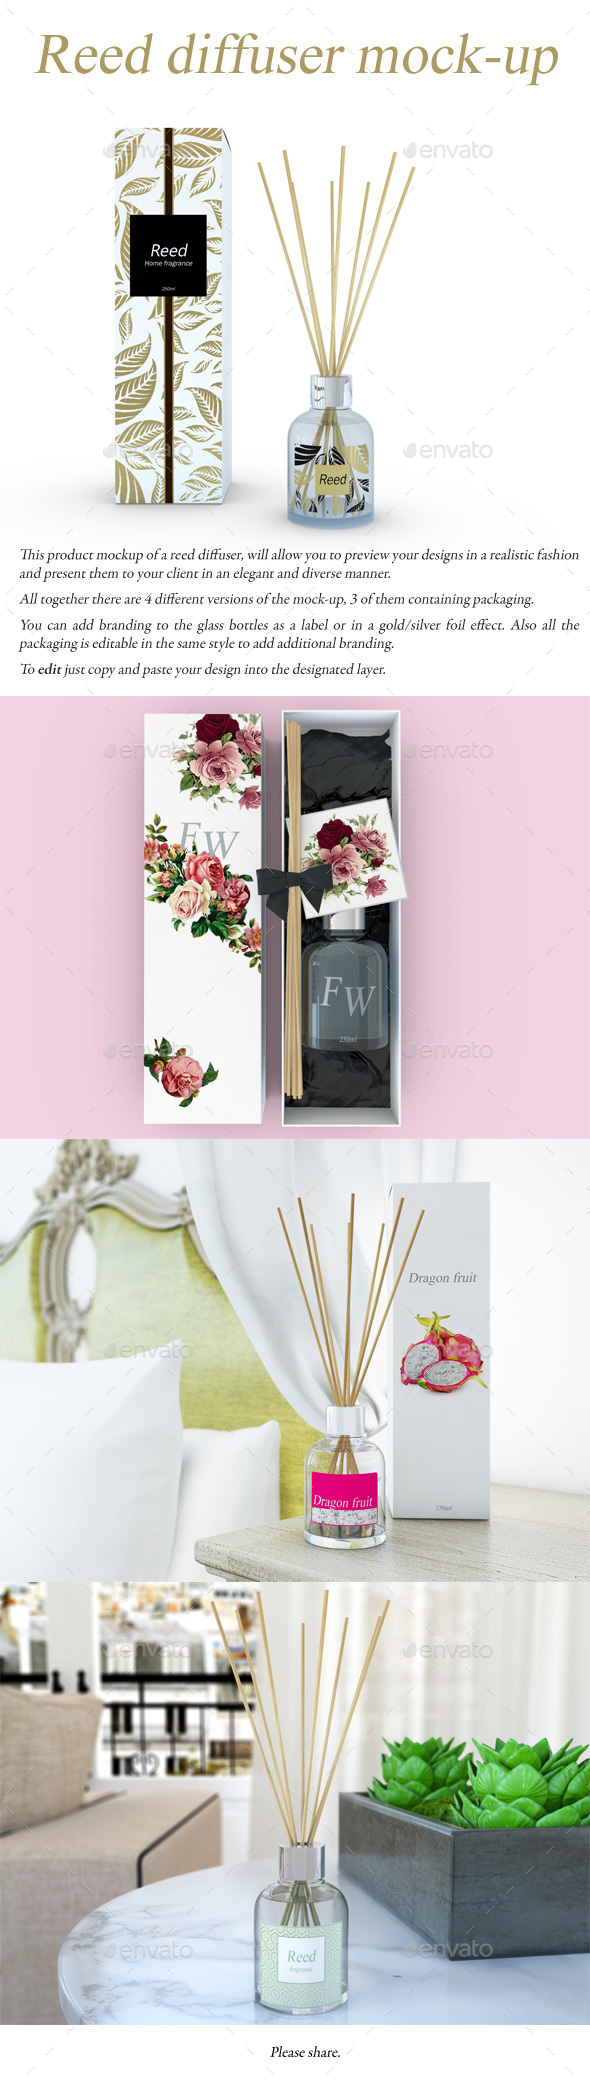 Reed Diffuser Mock-Up - Product Mock-Ups Graphics